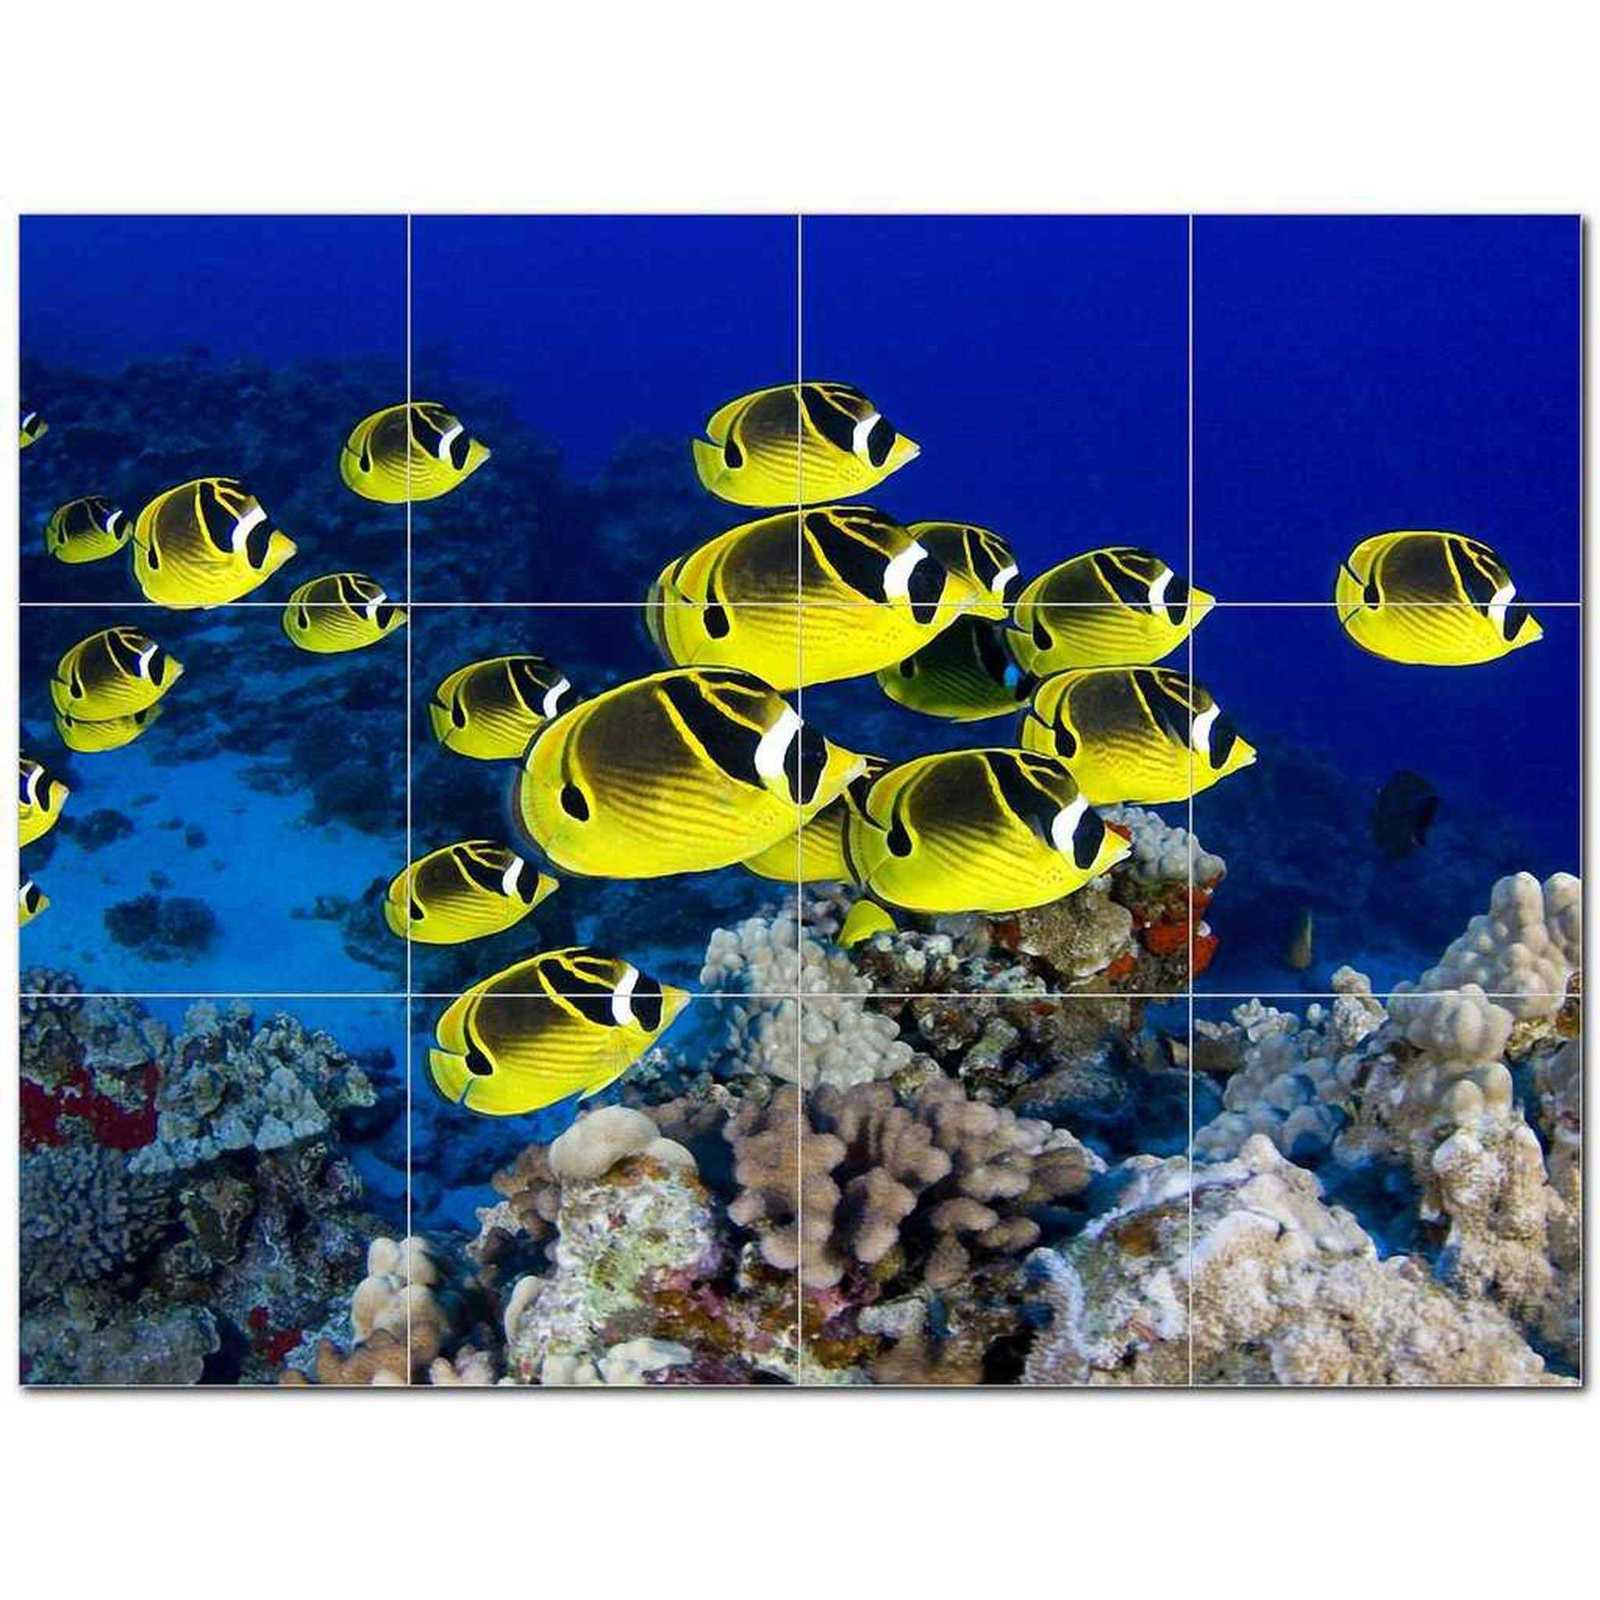 Primary image for Sealife Photo Ceramic Tile Mural Kitchen Backsplash Bathroom Shower BAZ405795